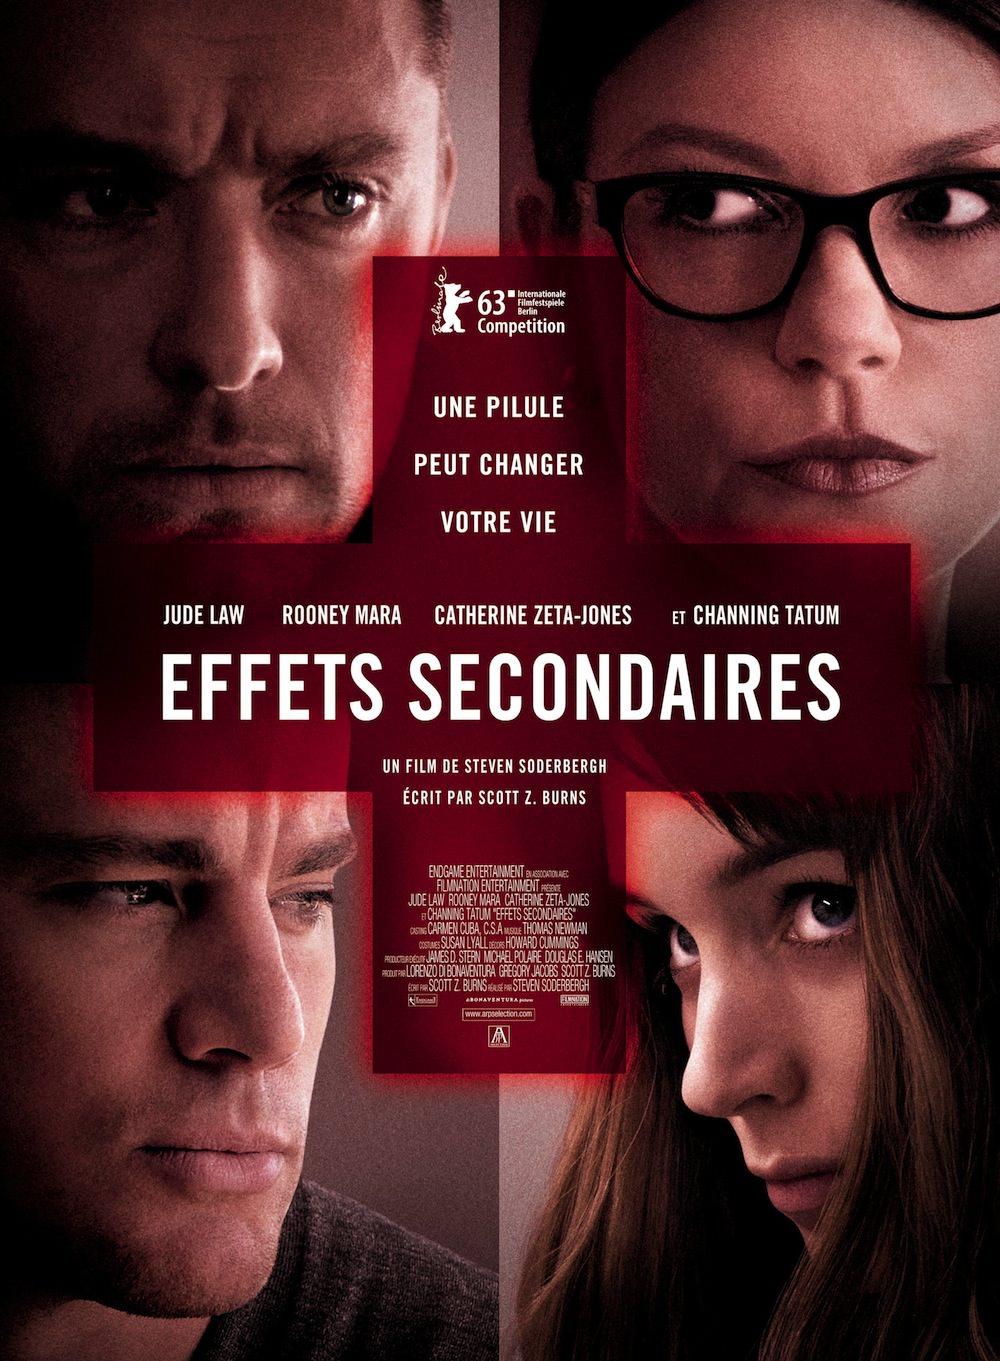 Effets secondaires soderbergh